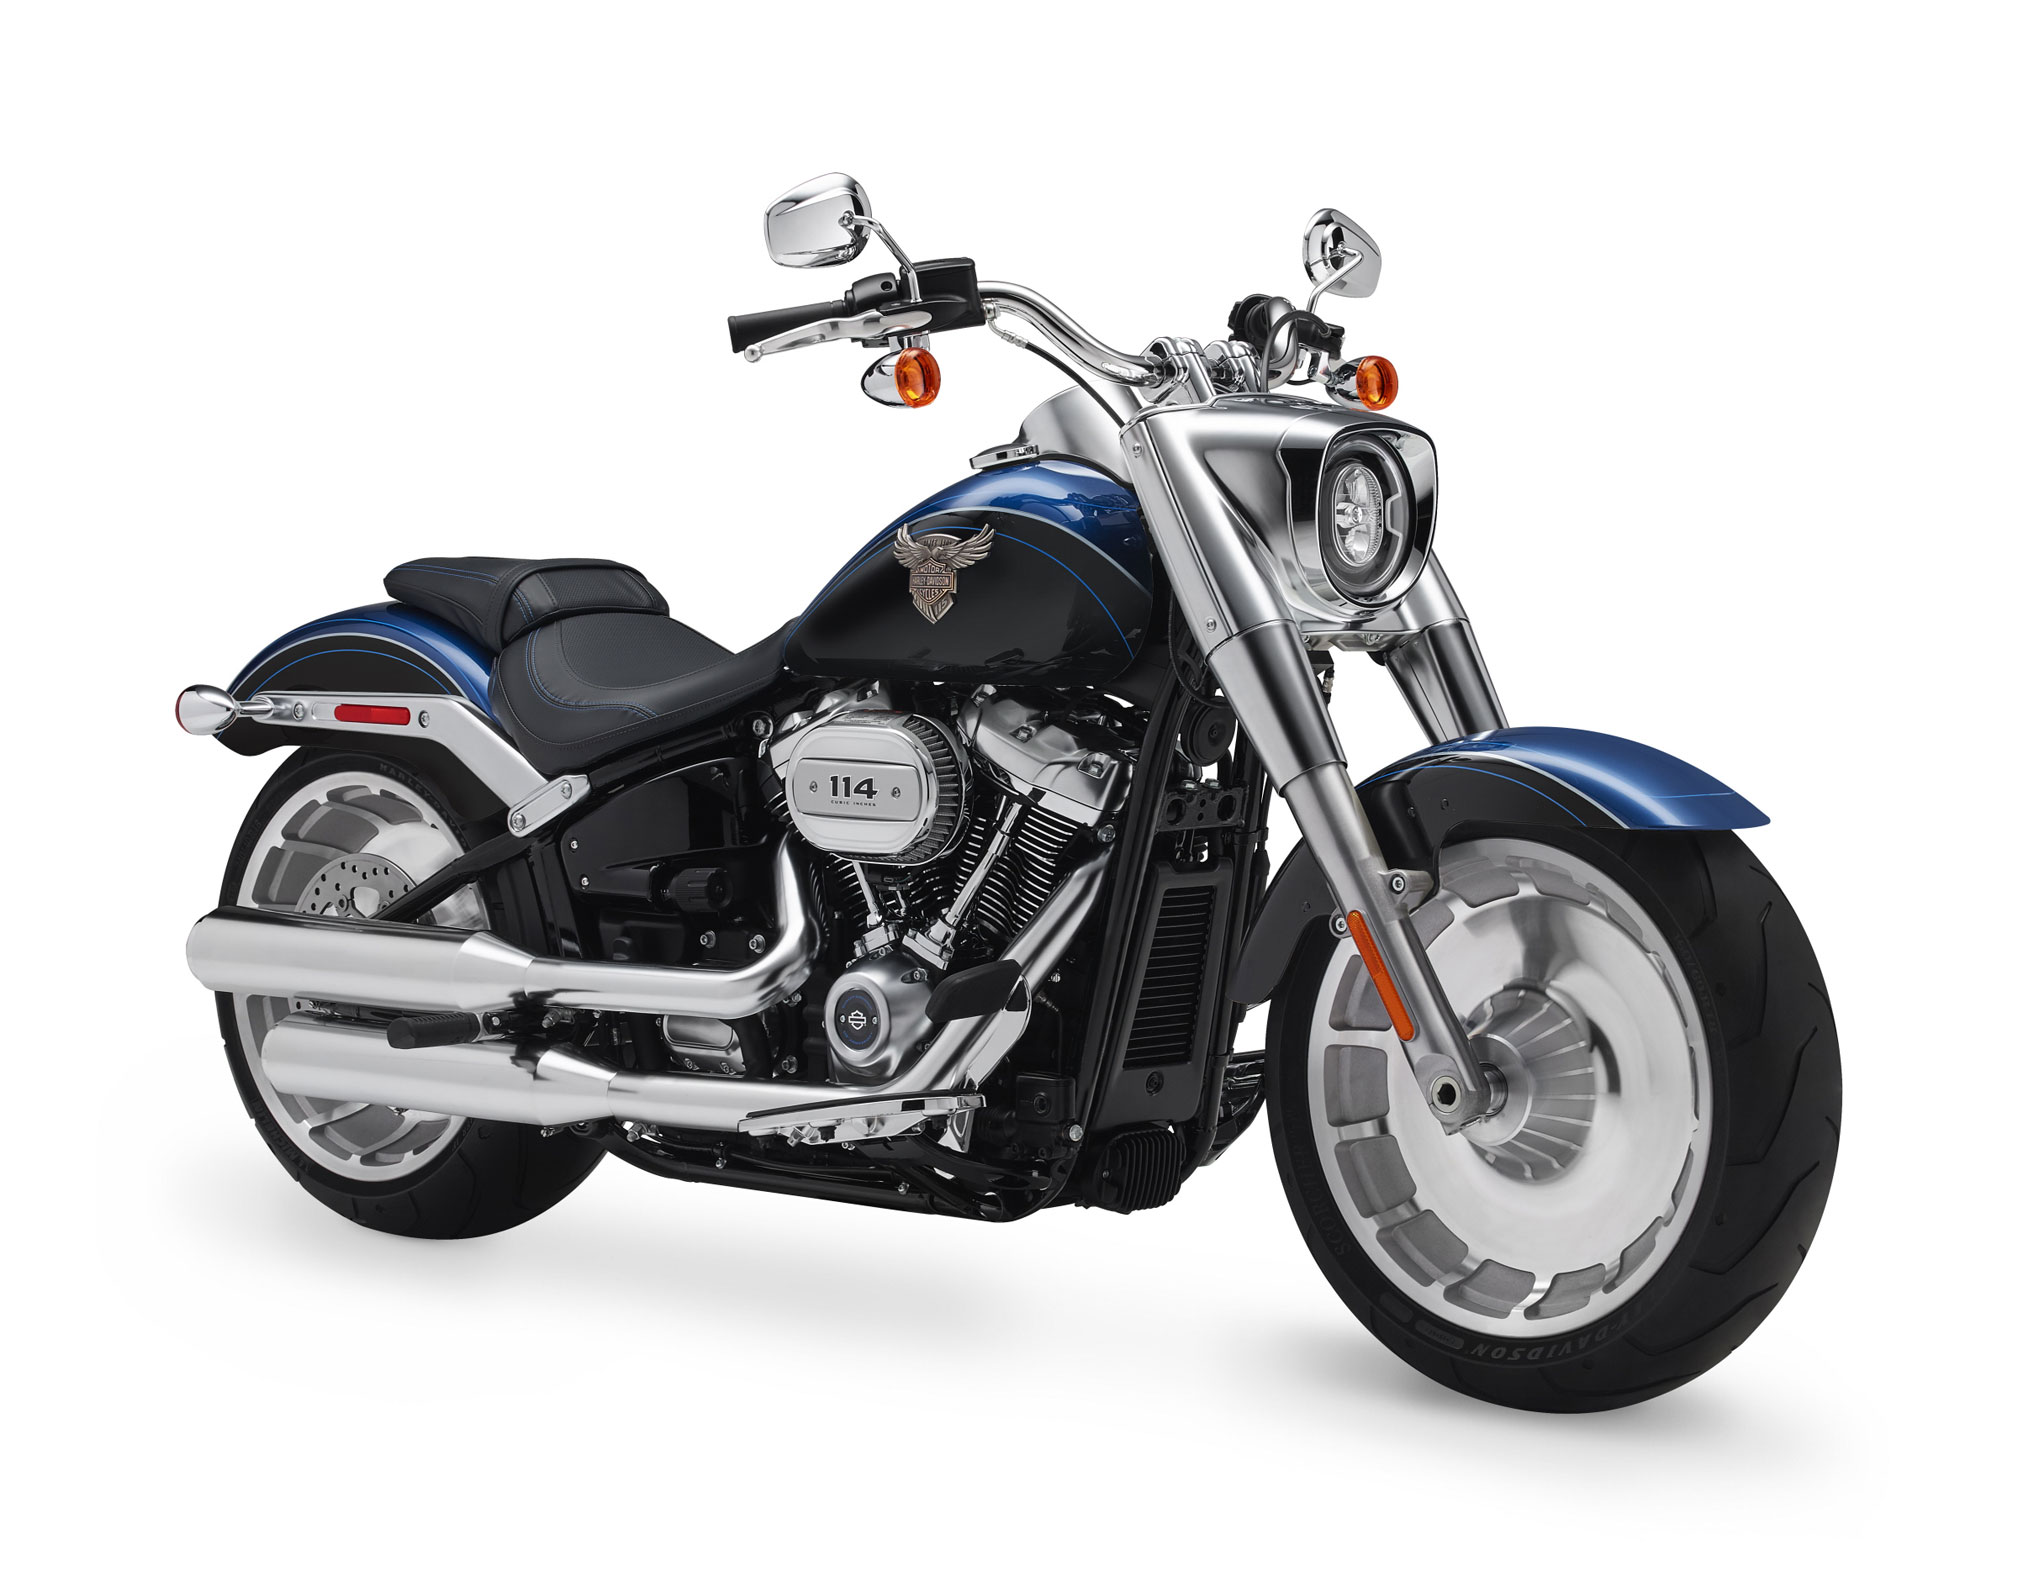 2018-Harley-Davidson-Fat-Boy-115th-Anniversary-ANV4